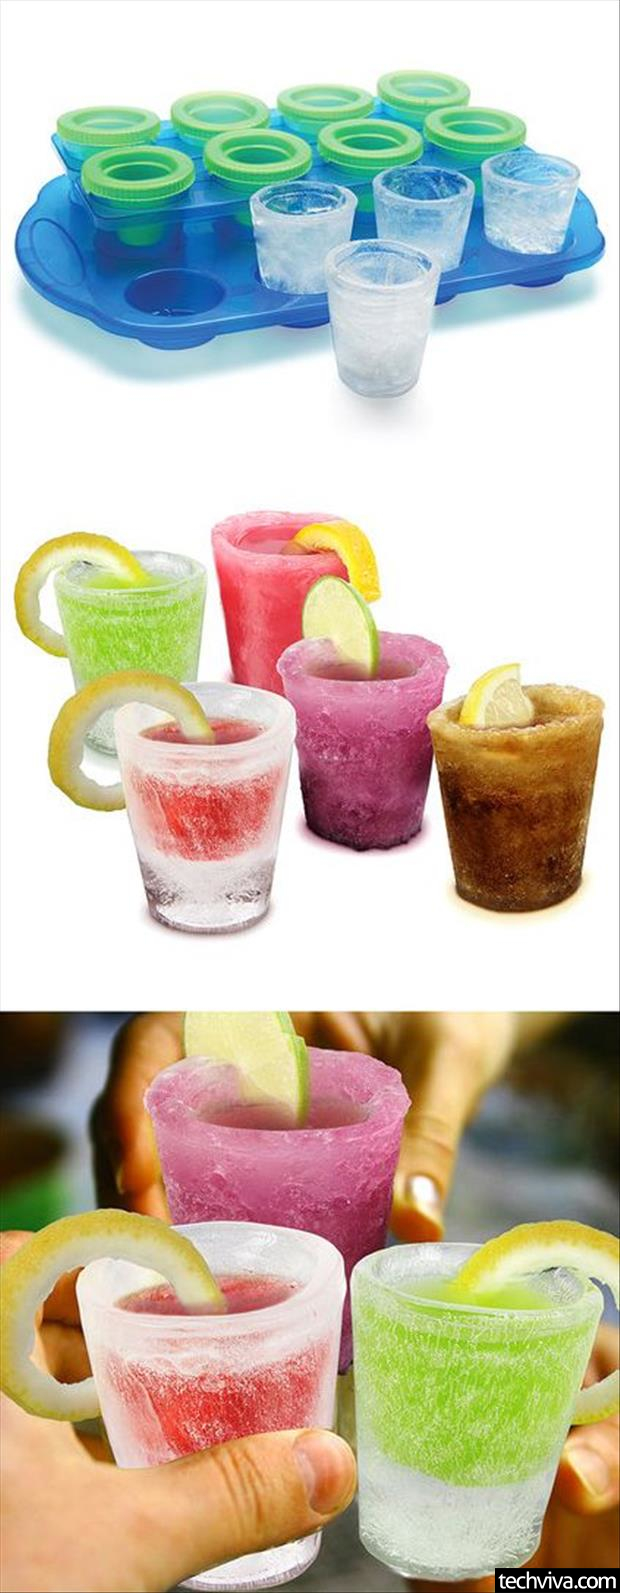 jello-shot-ice-shot-glasses-maker